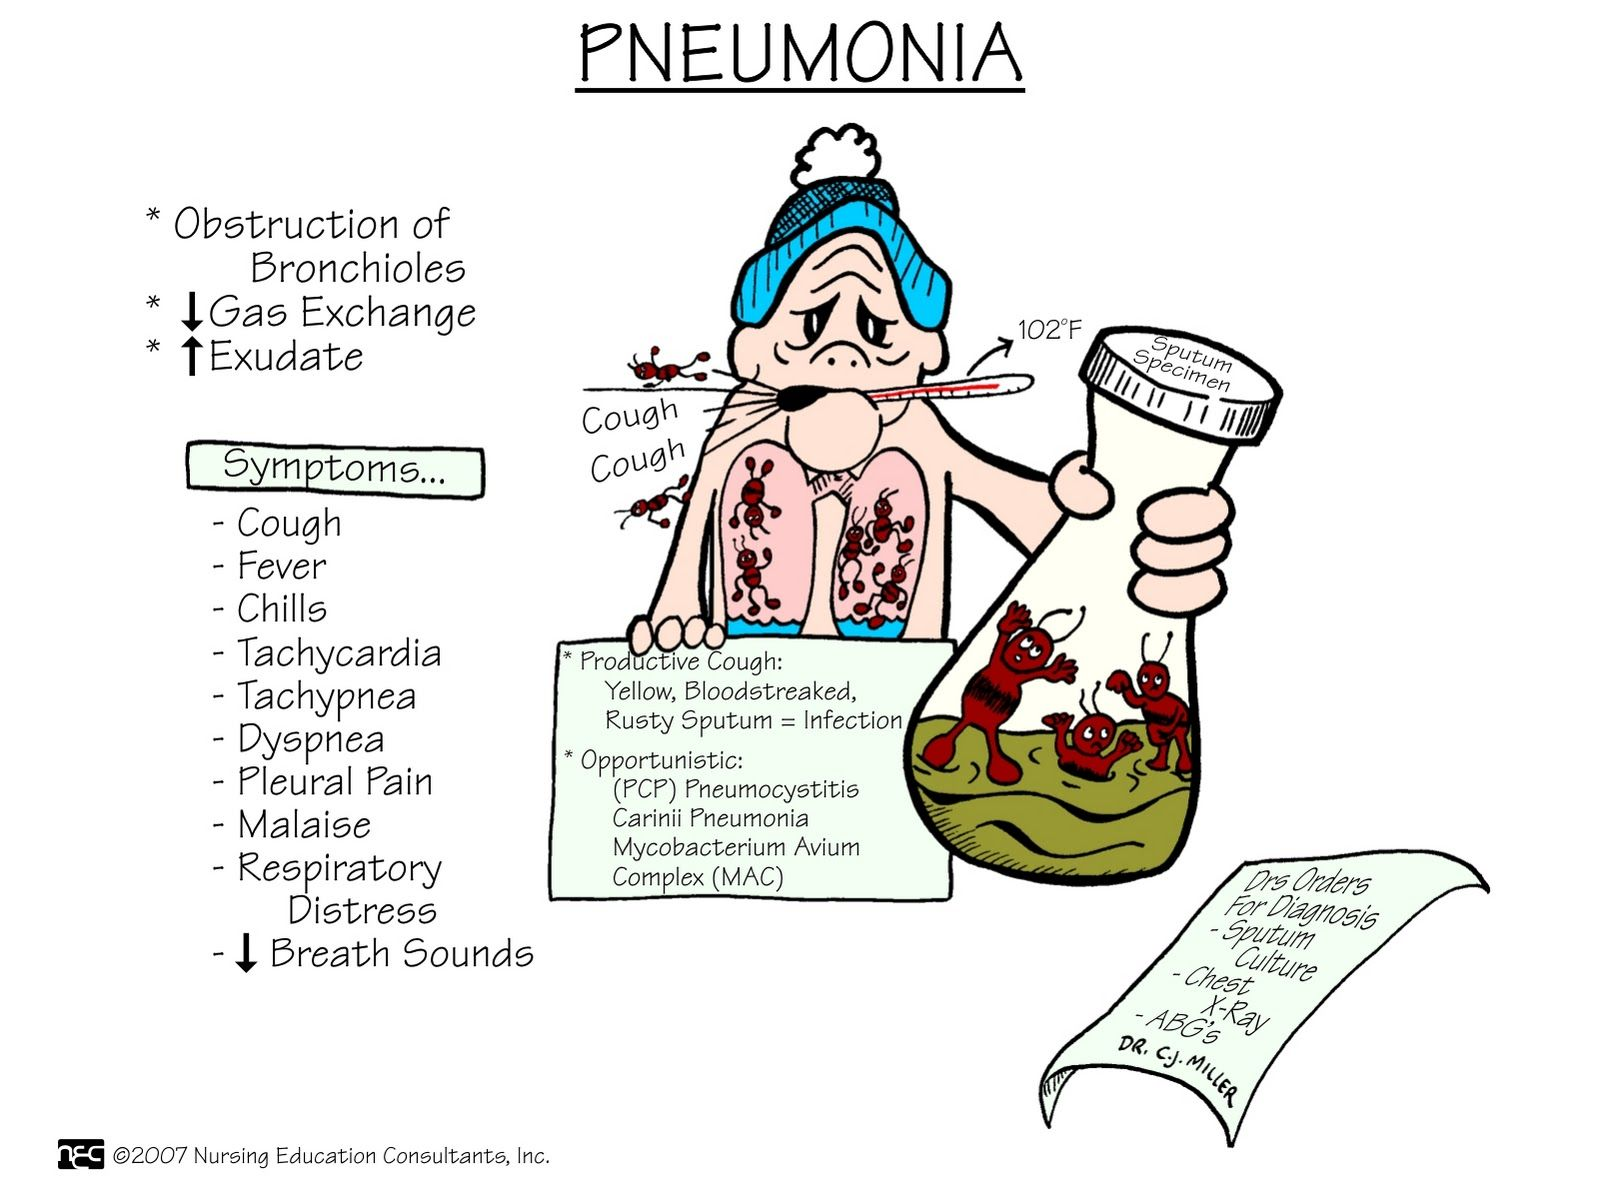 nursing mnemonics and tips blog. need to use this to study with